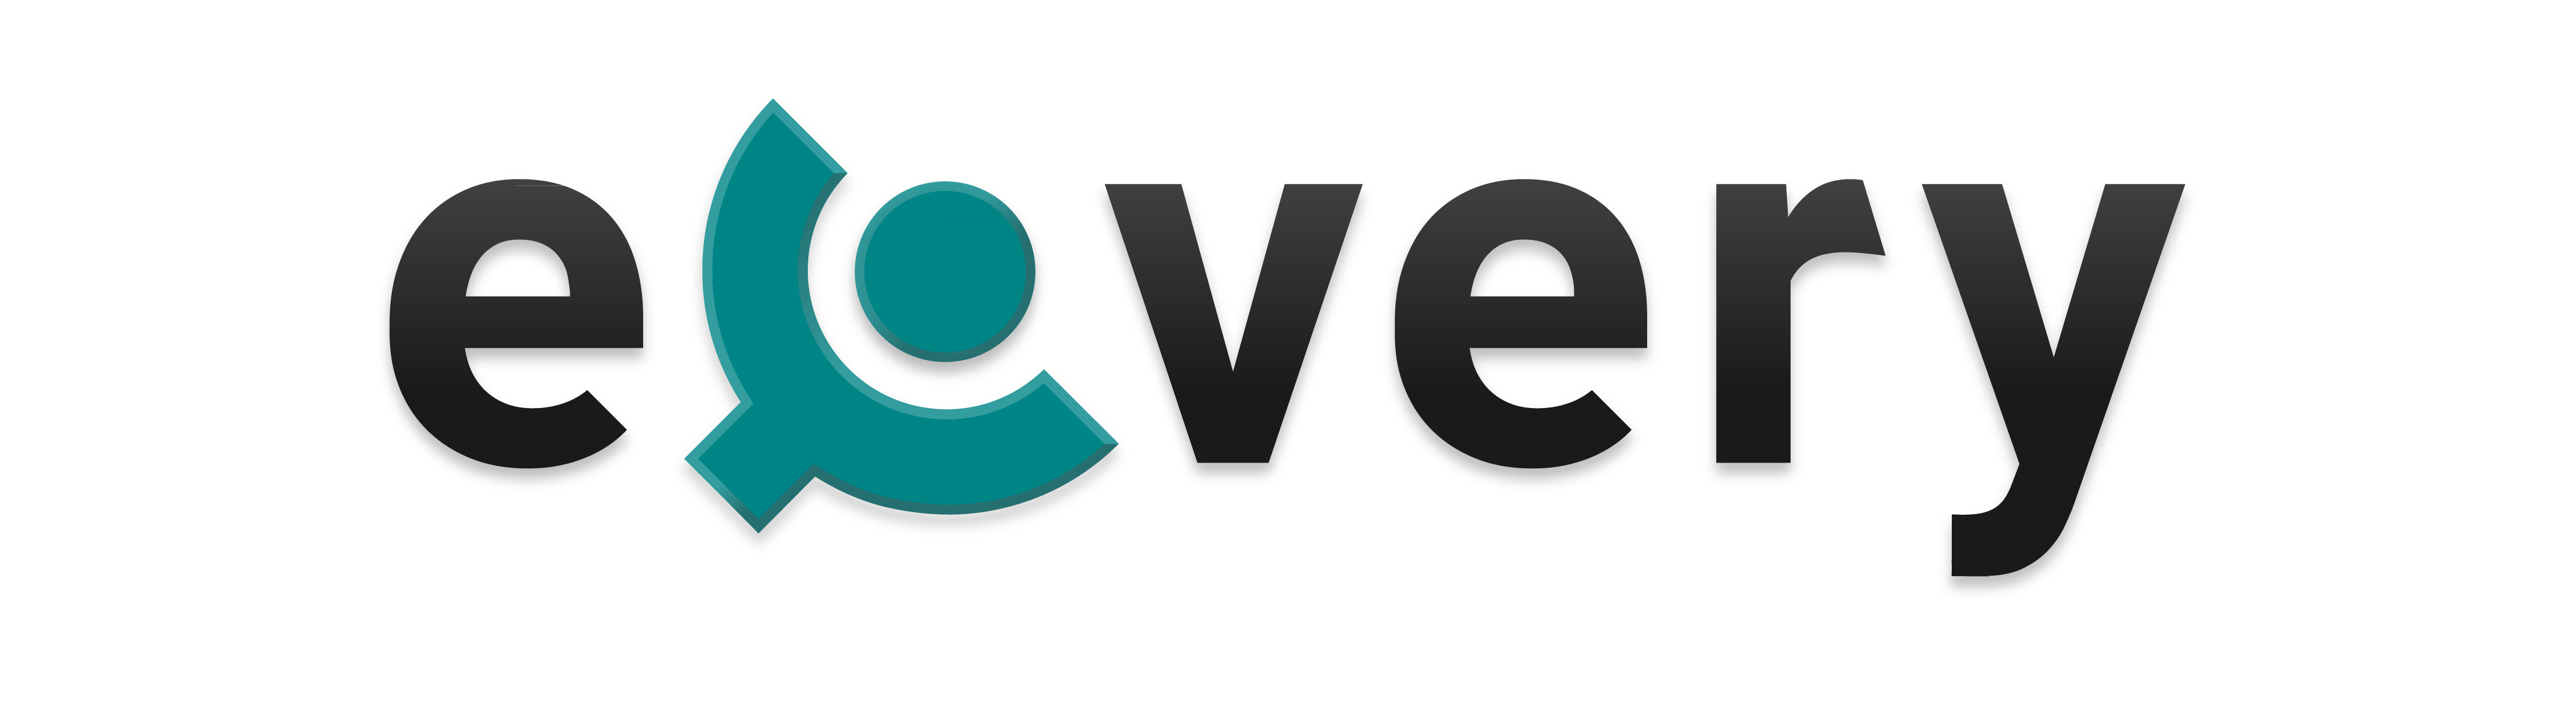 eCovery